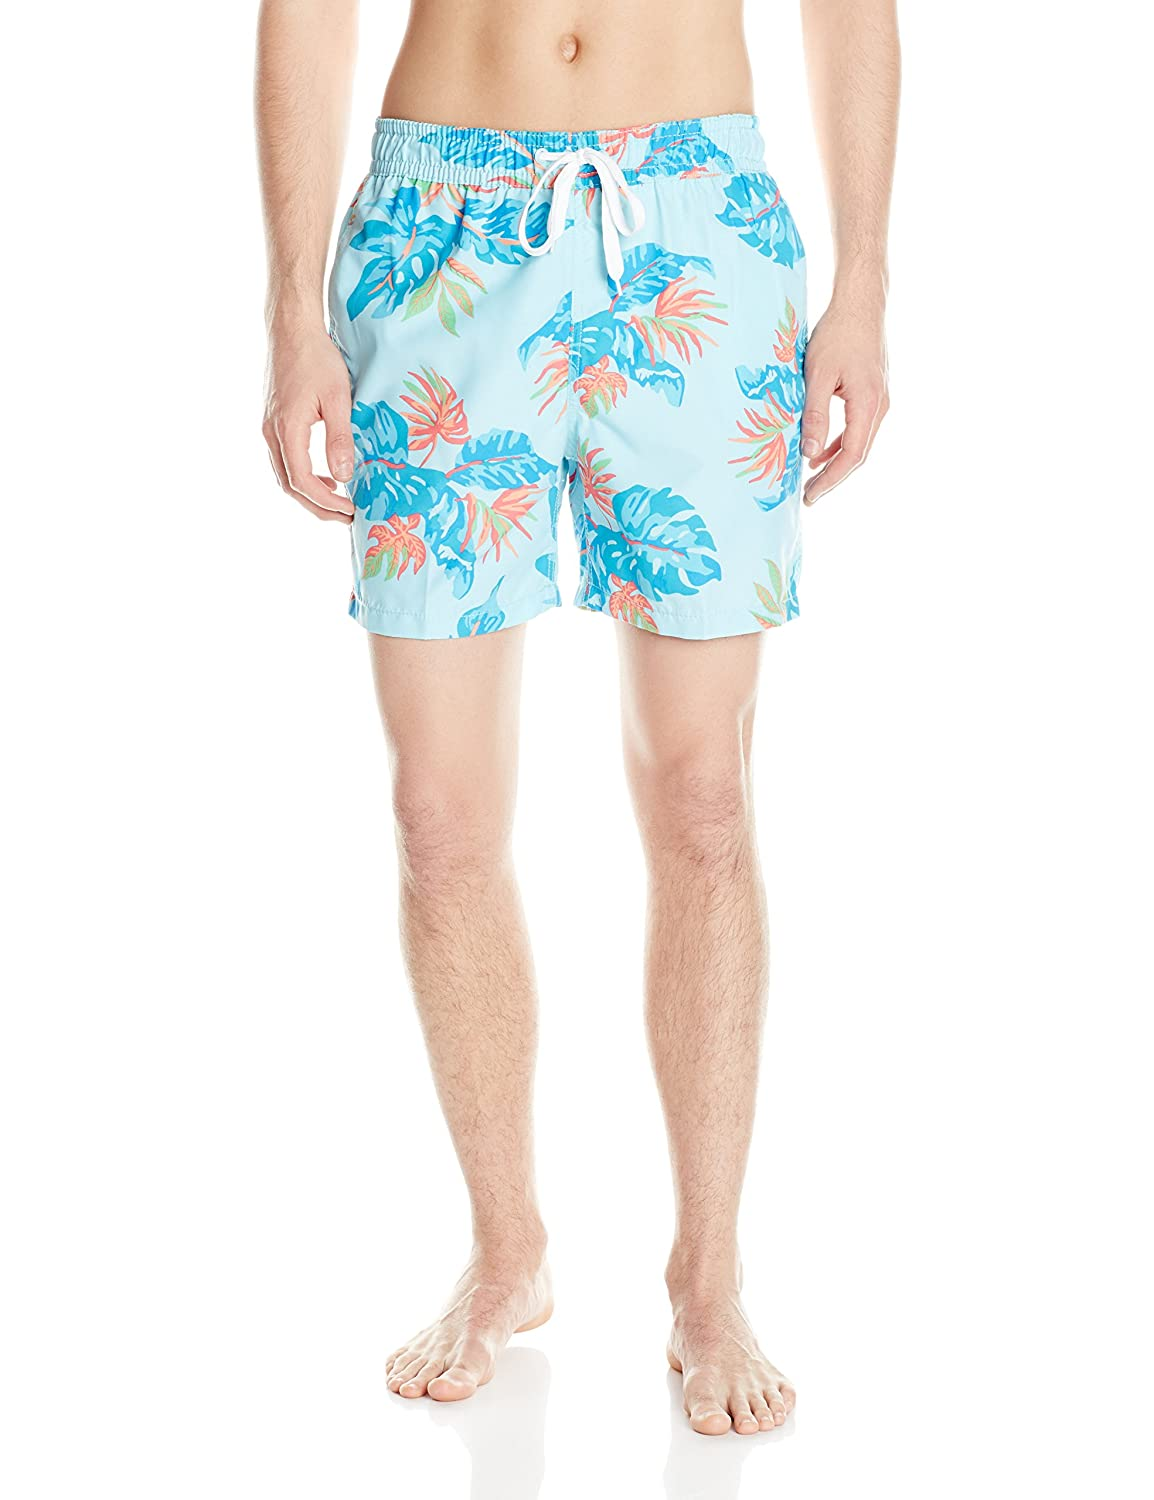 Kanu Surf Men's Riviera Swim Trunks Kanu Surf Men's Swimwear 3462